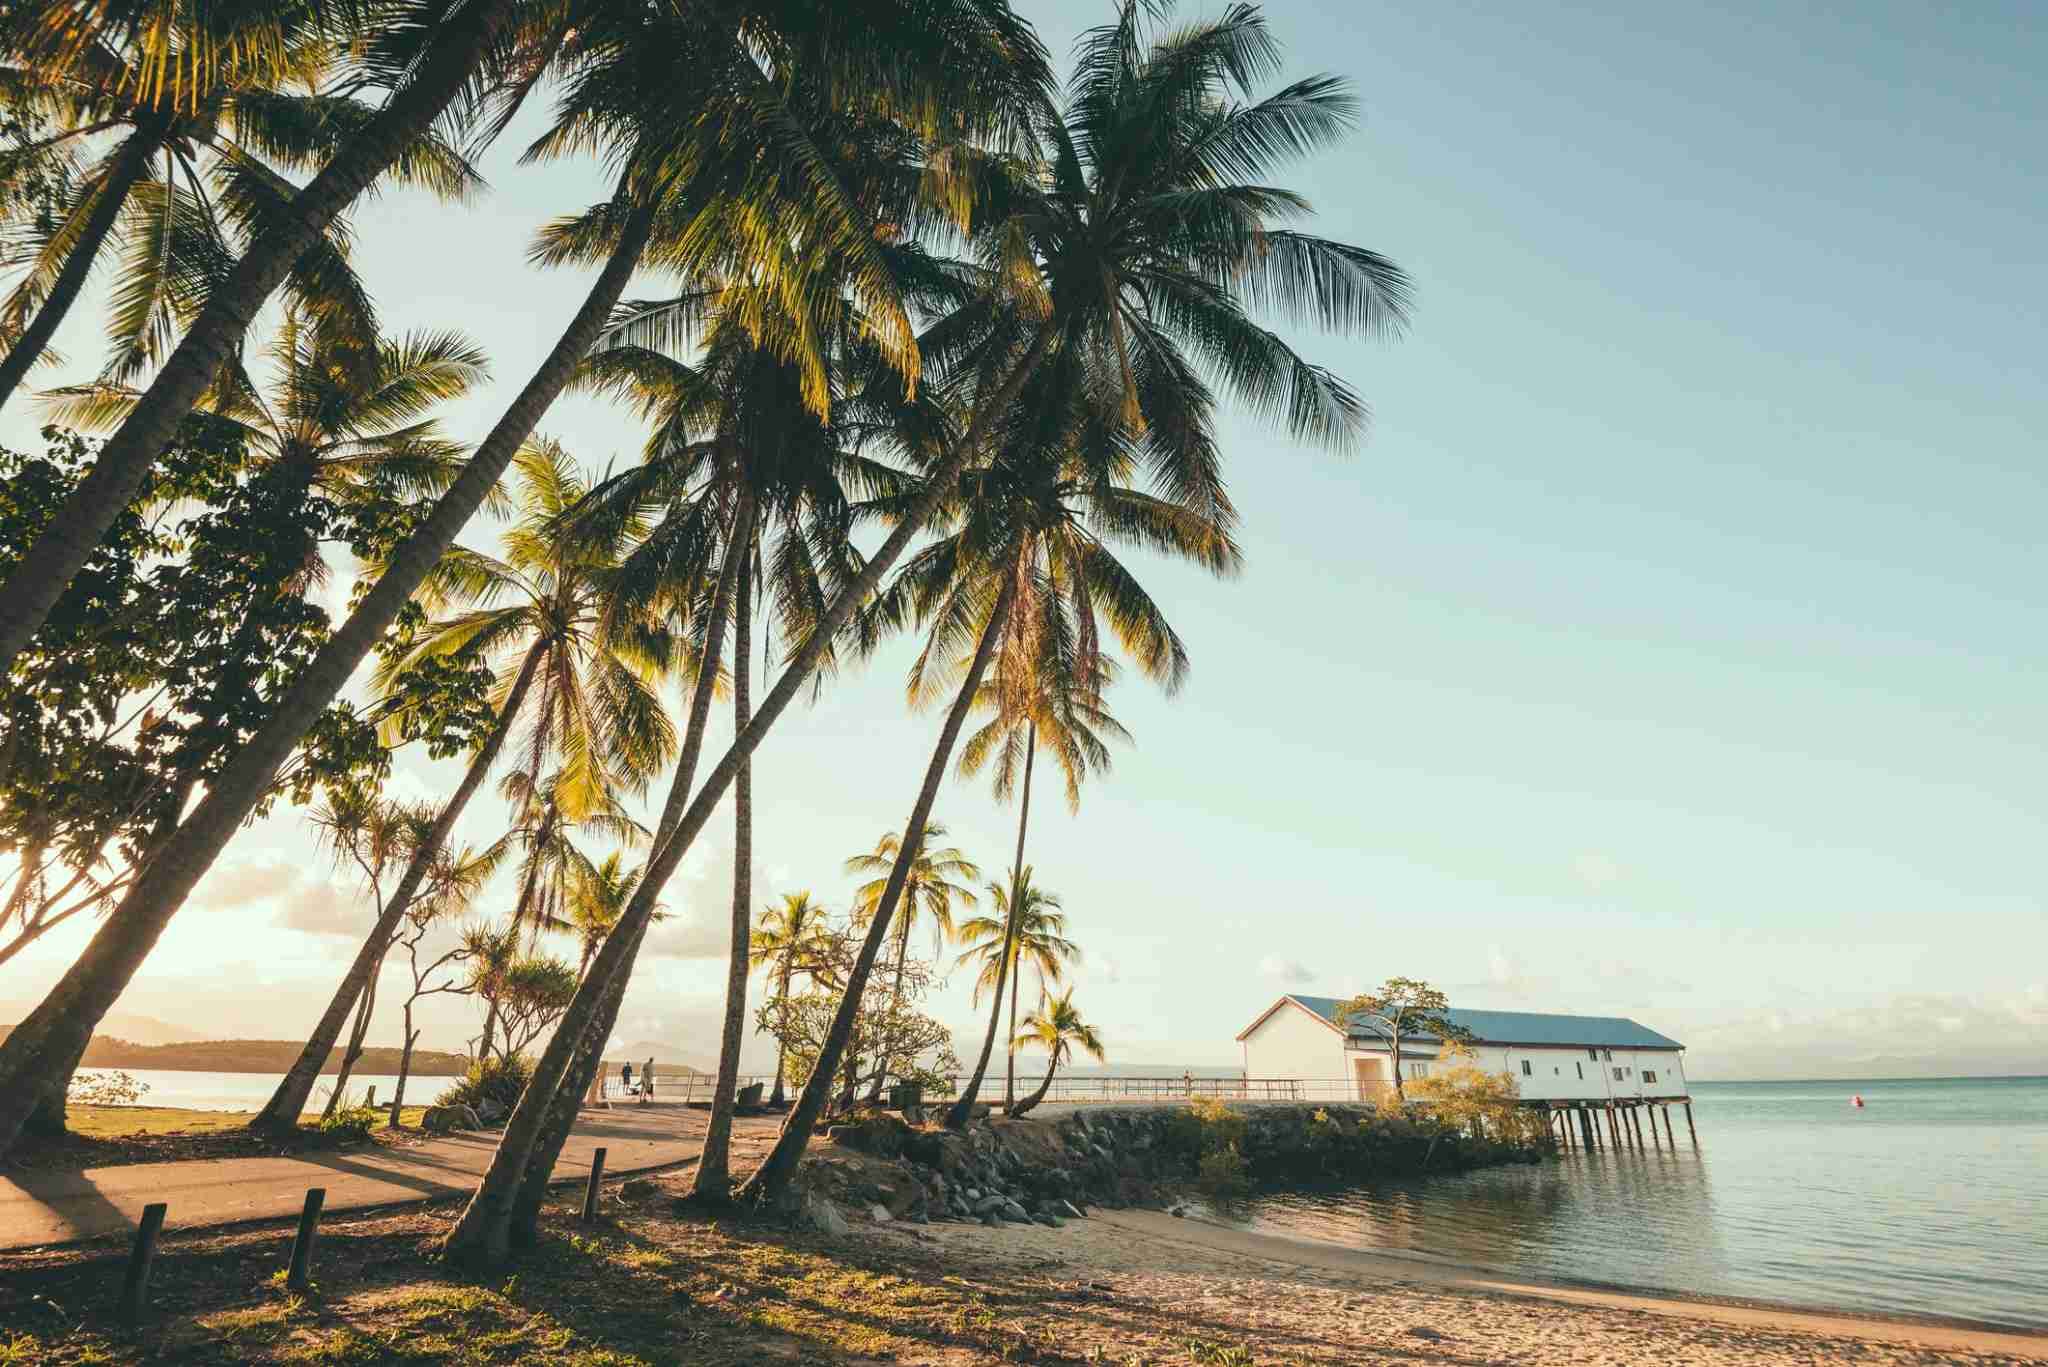 The dock at Port Douglas, Australia (Photo by John Crux Photography/Getty Images)